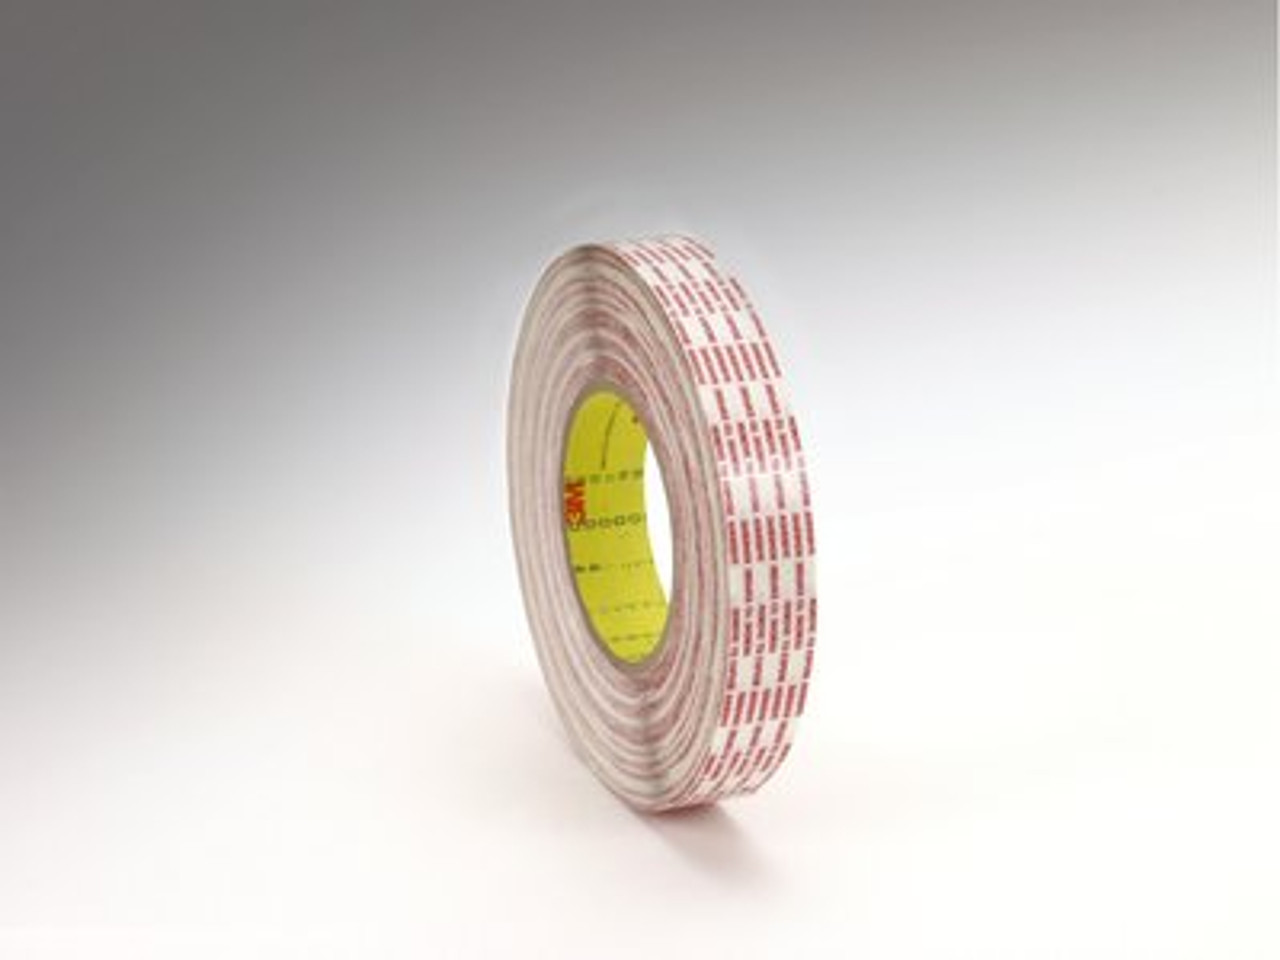 3M™ Double Coated Tape Extended Liner 476XL Translucent, 1 in x 60 yd 6.0 mil